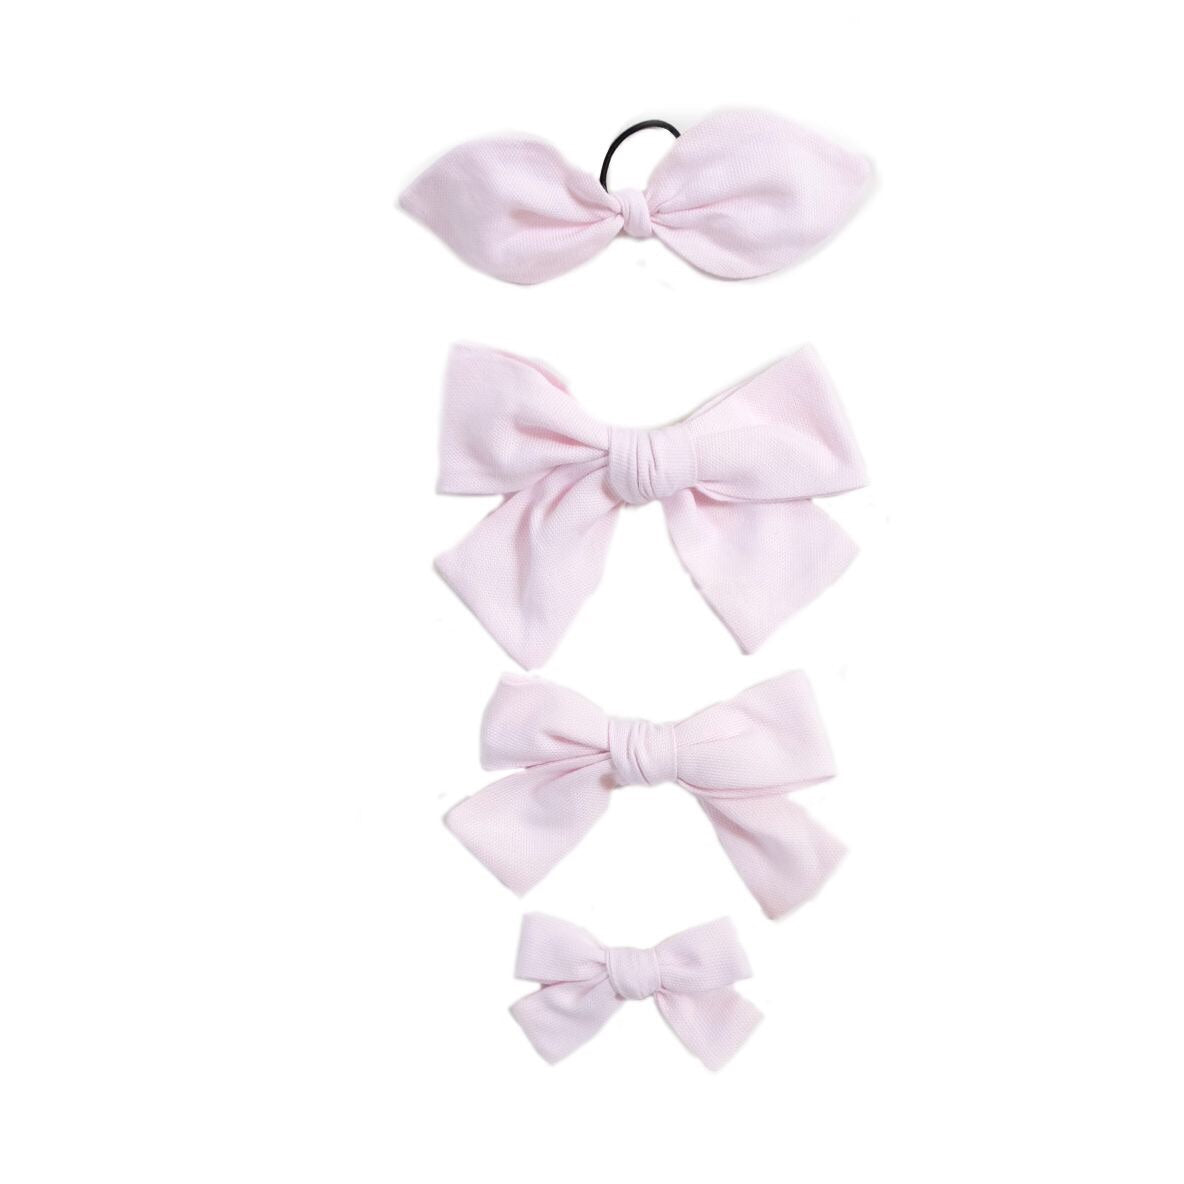 Handtied Hairbows Sweet Pea Light Pink Oxford